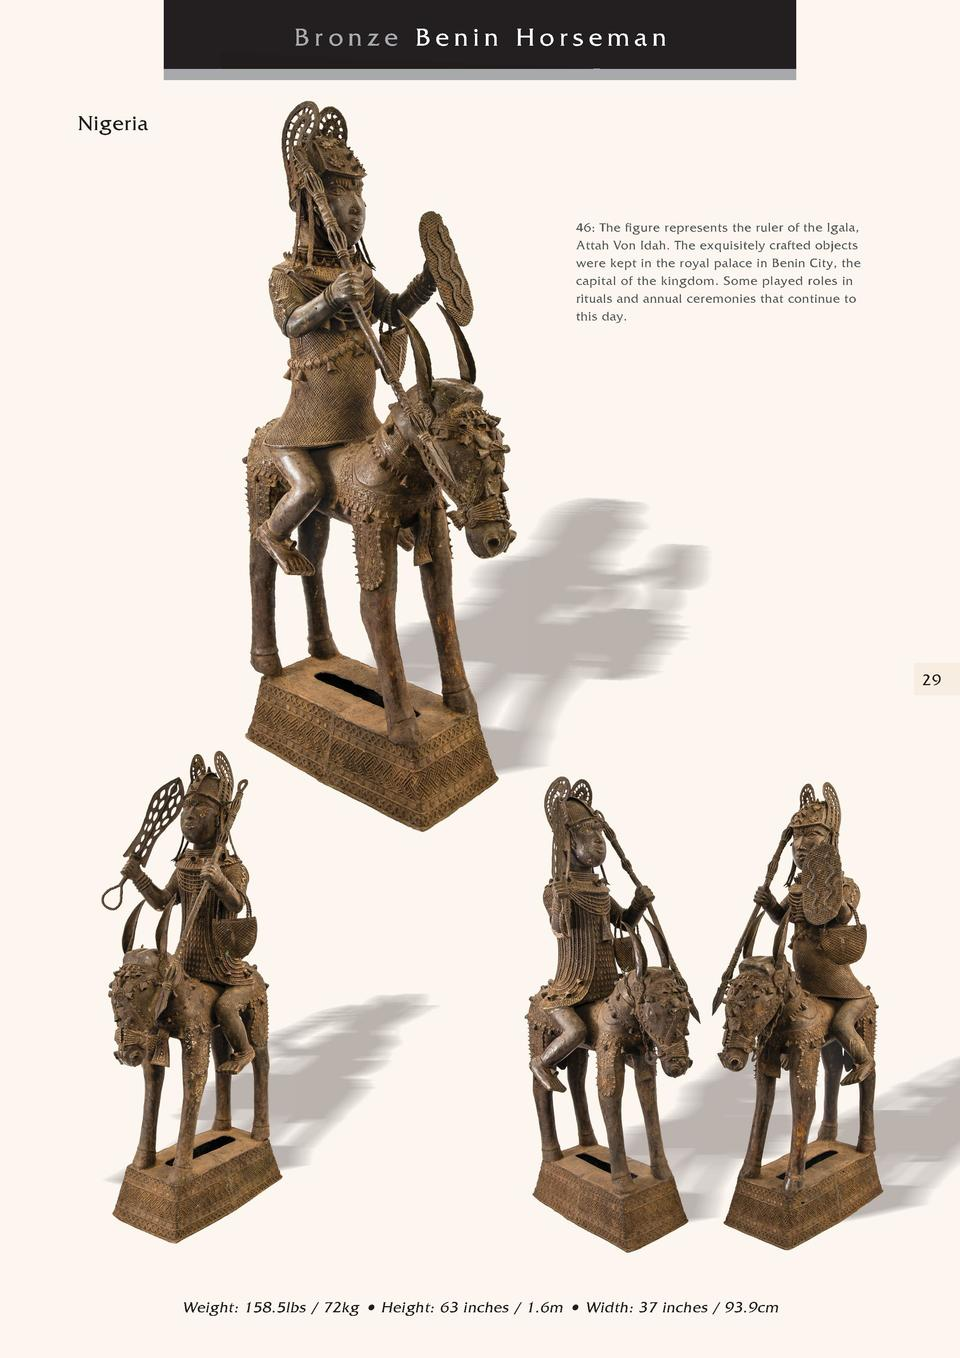 Bronze Benin Horseman Nigeria  46  The figure represents the ruler of the Igala, Attah Von Idah. The exquisitely crafted o...